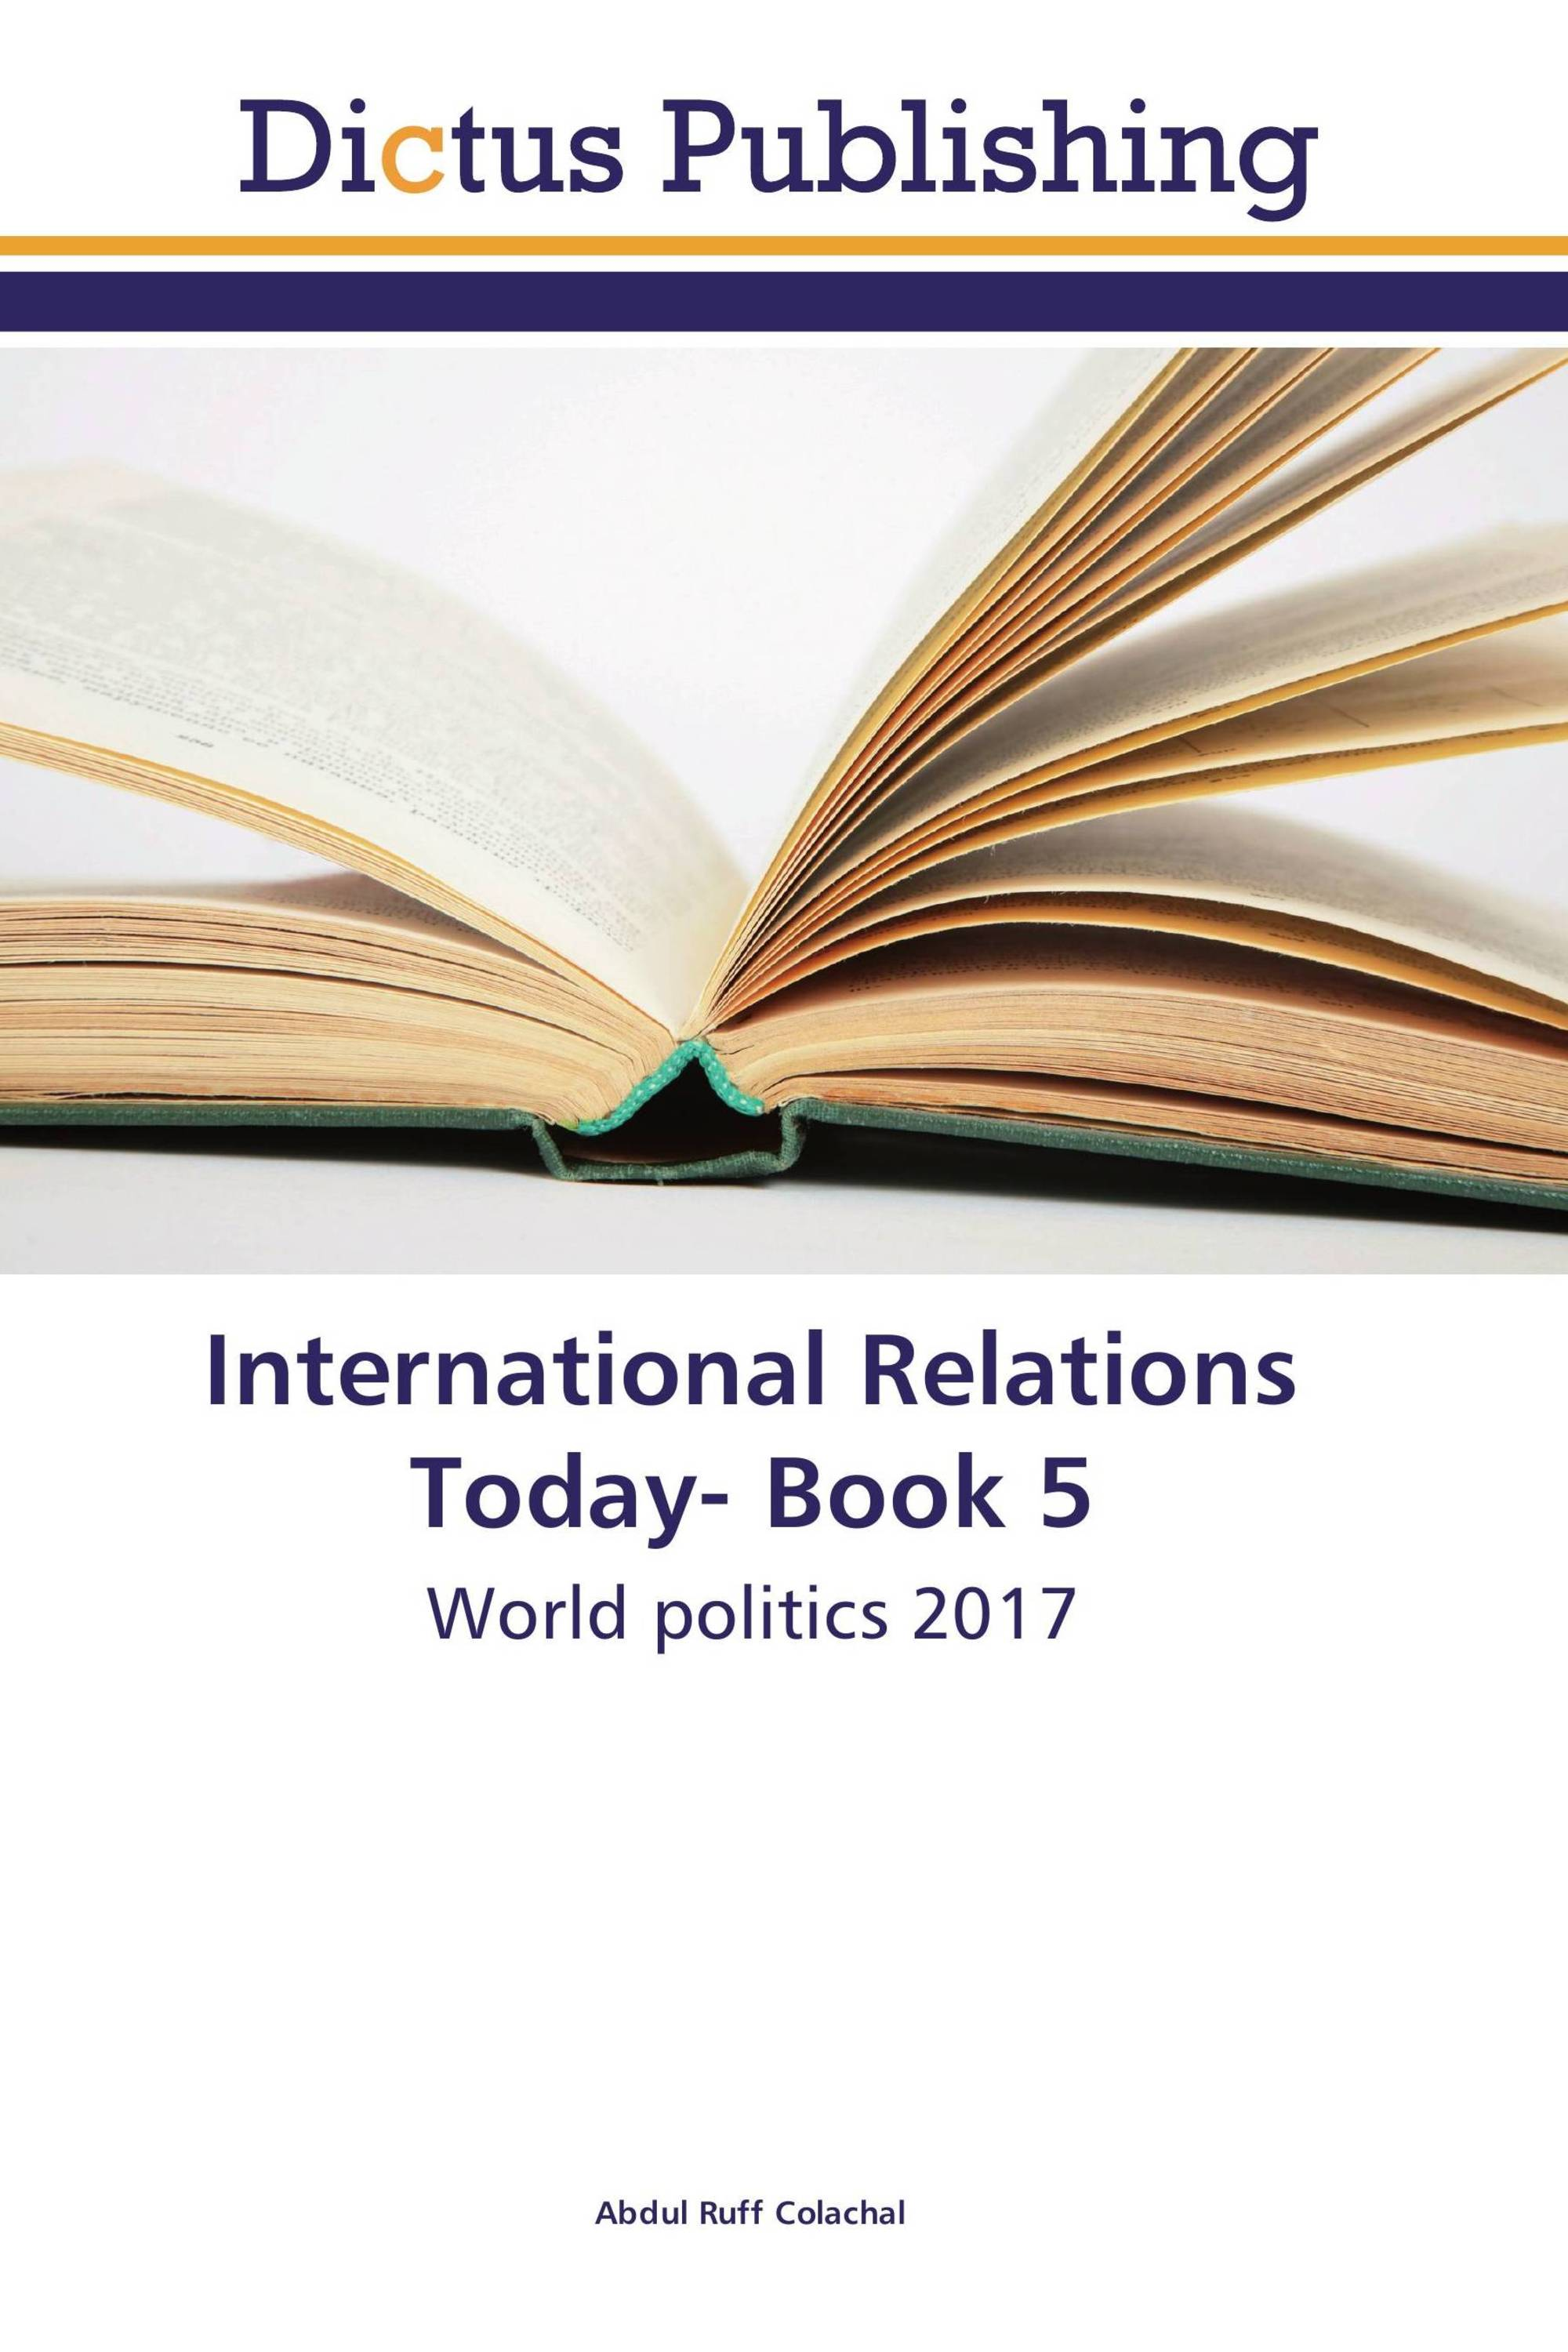 International Relations Today- Book 5 / 978-620-2-47903-5